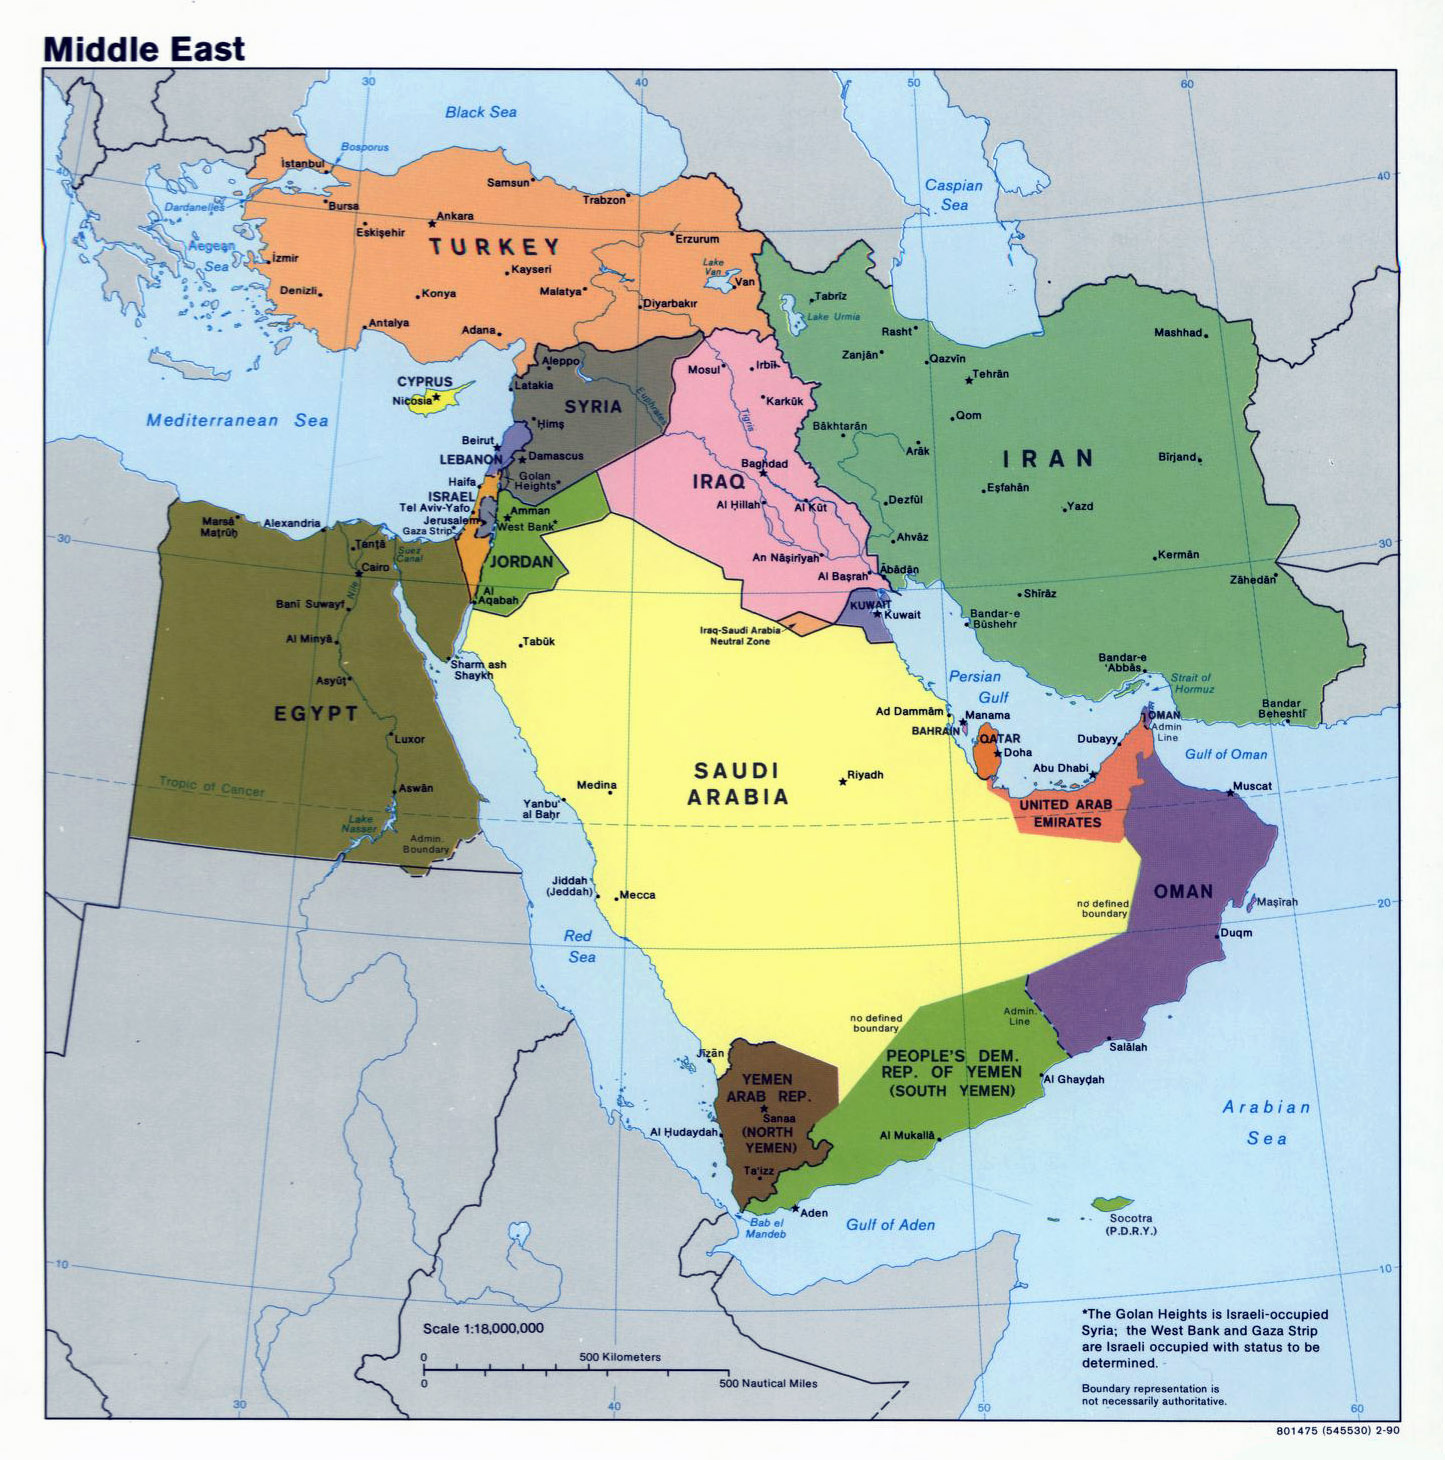 Map Of Asia And Middle East.Large Political Map Of The Middle East 1990 Middle East Asia